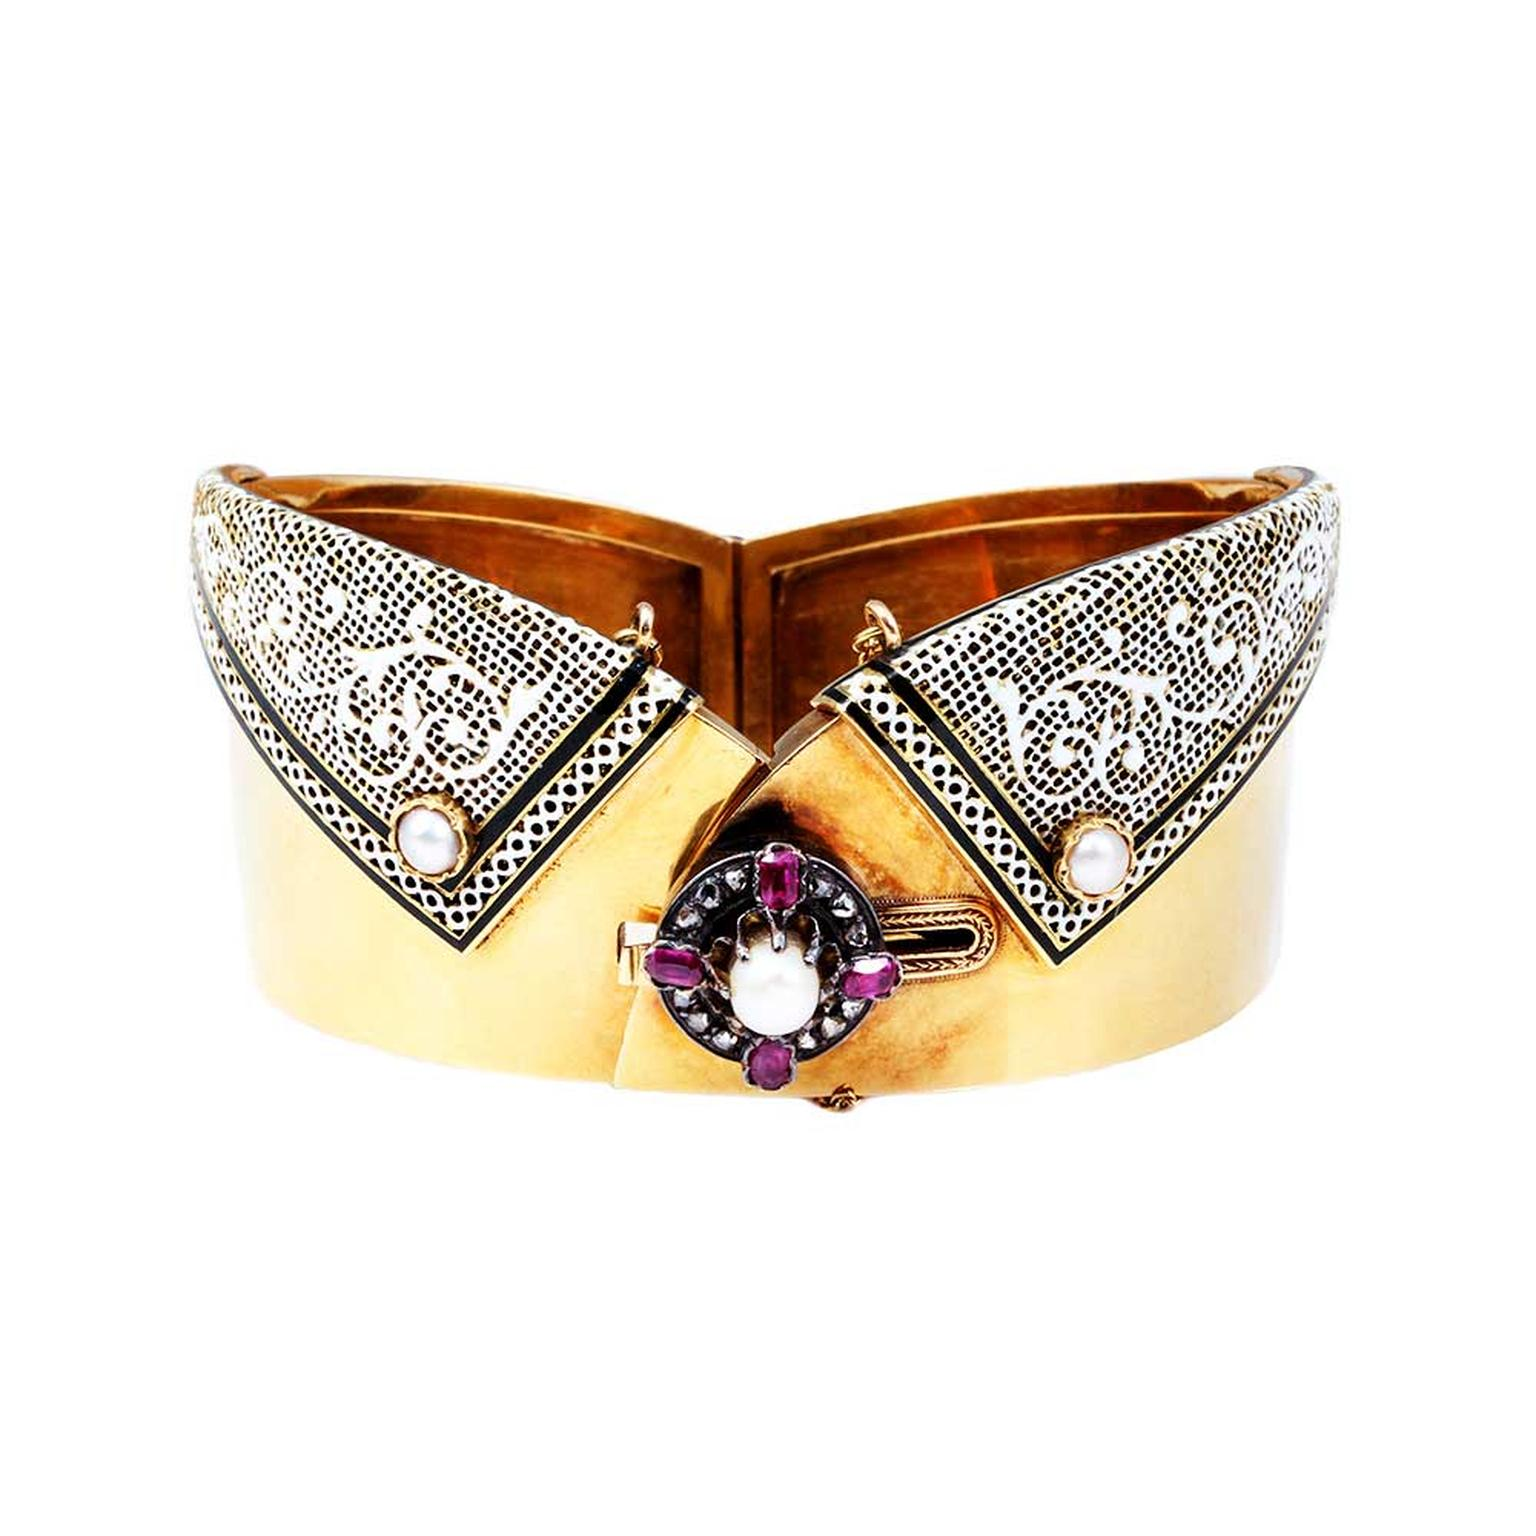 Bell and Bird French manchette bracelet with rubies, pearls and diamonds